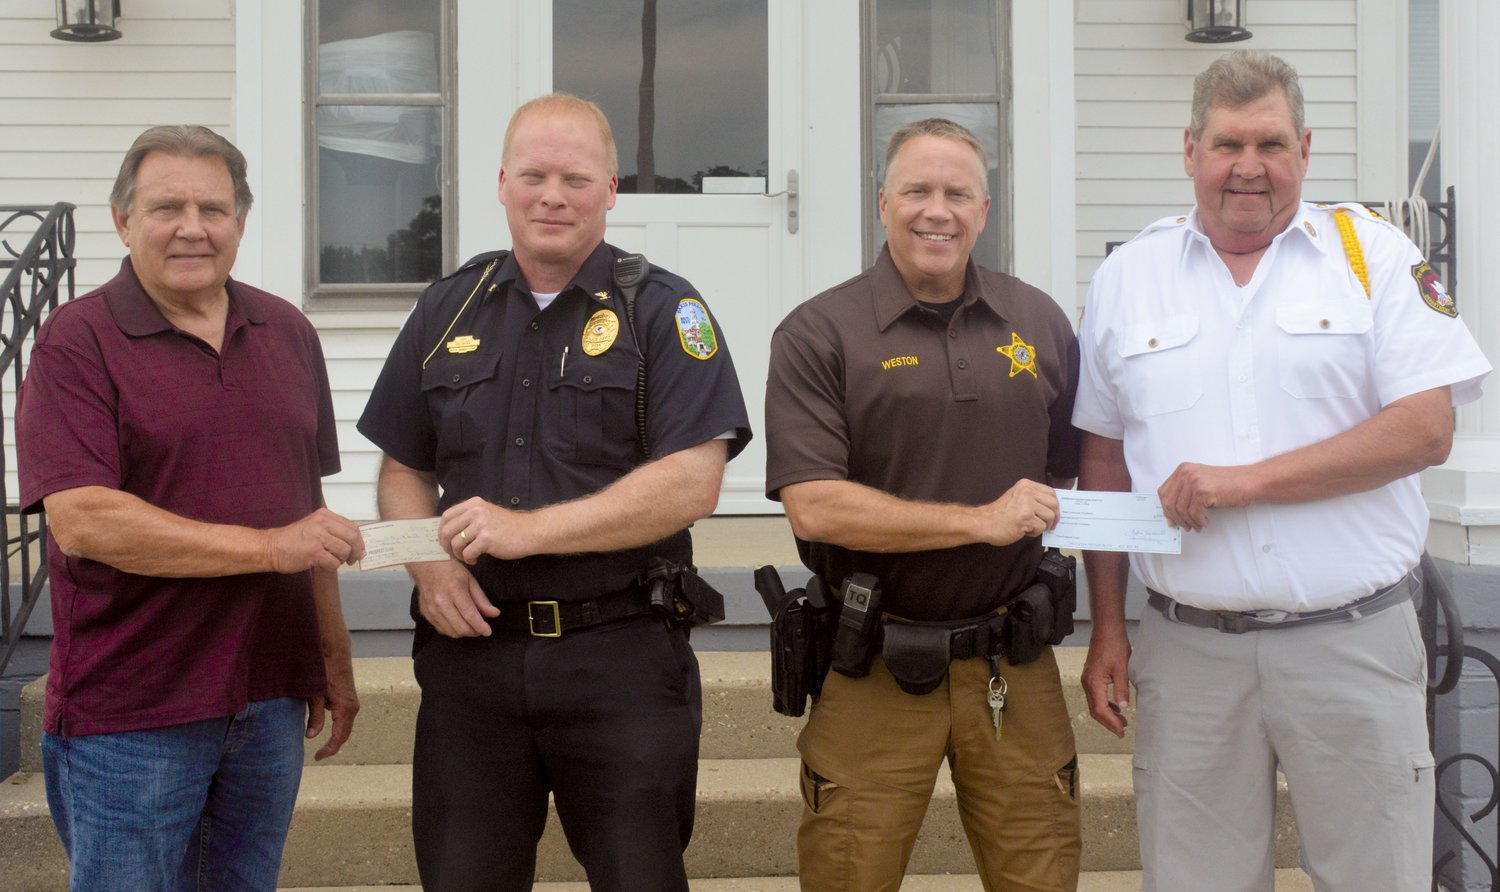 Representatives of the Paris American Legion Post 211 and the Paris Sons of the American Legion presented checks in support of the Friends of Edgar County Law Enforcement's fundraising effort to provide better equipment for all county officers. Pictured, from left, is Don Furry, Sons of the American Legion, Paris Police Chief Eric Brown, Edgar County Sheriff's Department Chief Deputy Derek Weston and Paris Post 211 Commander Paul Hanks.